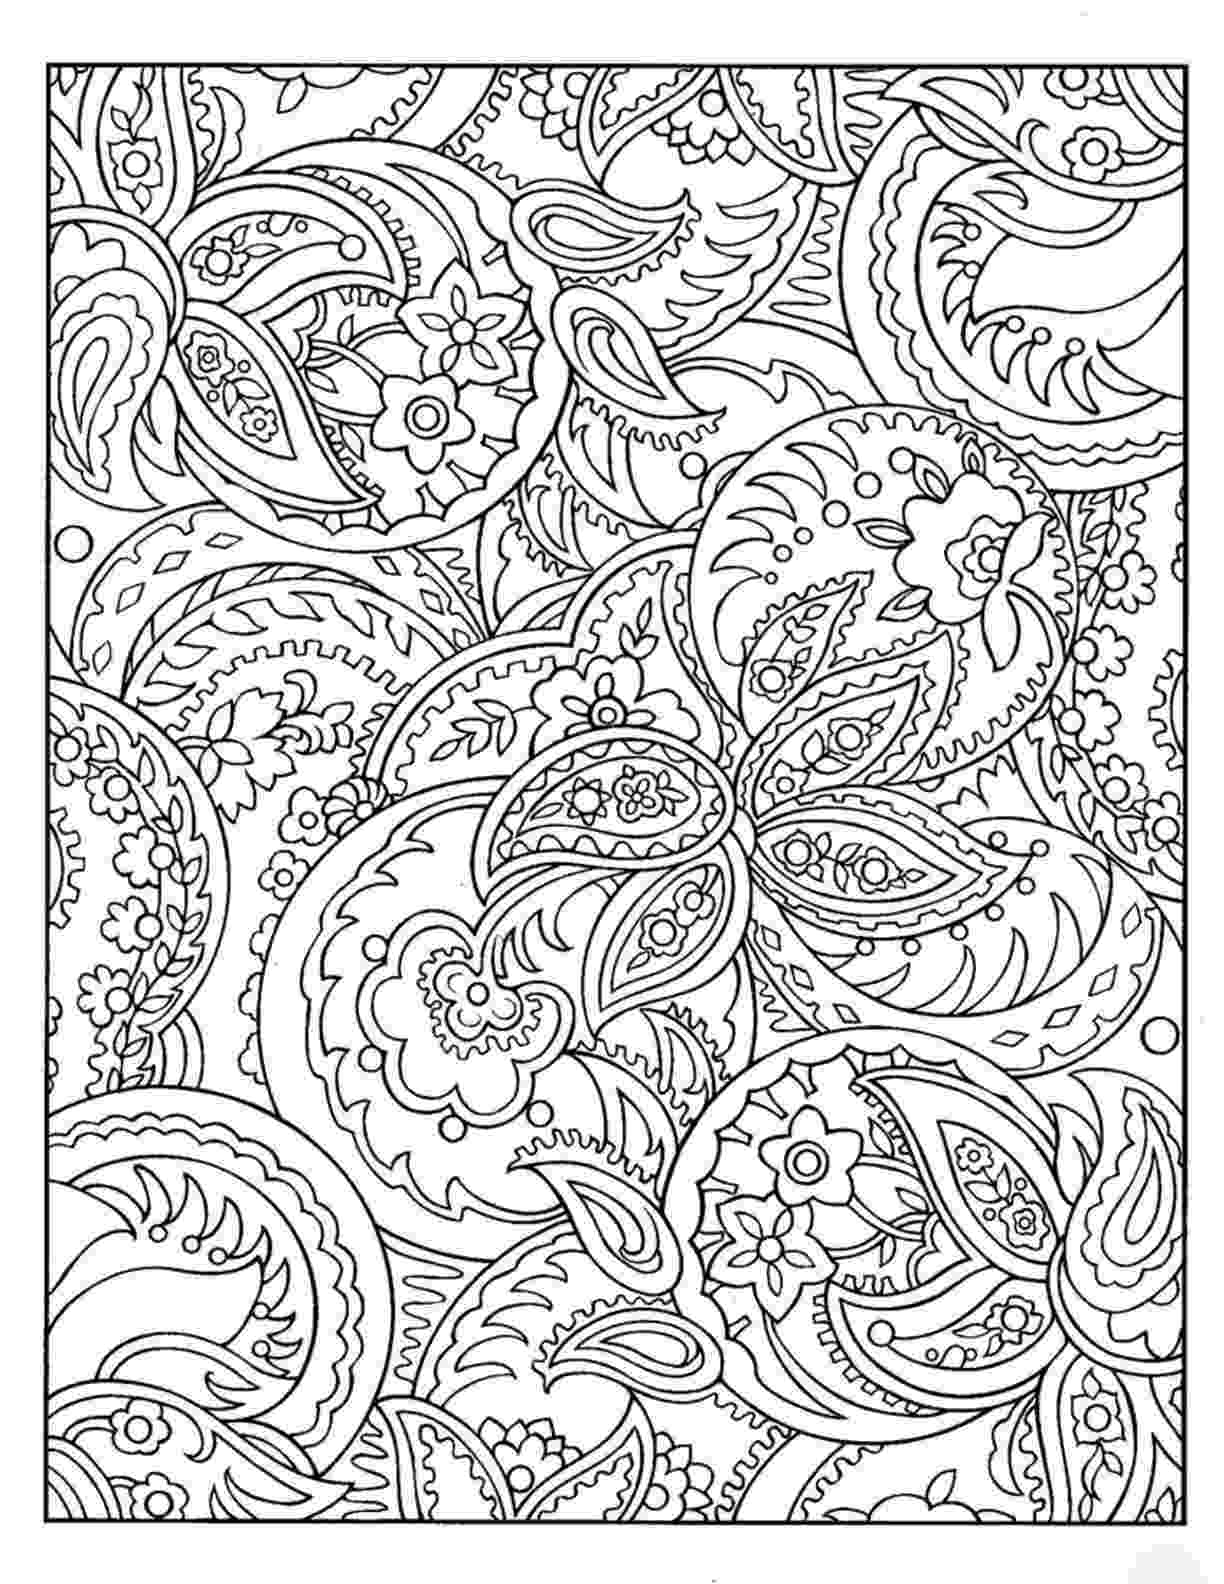 colouring pattern free printable geometric coloring pages for kids colouring pattern 1 1